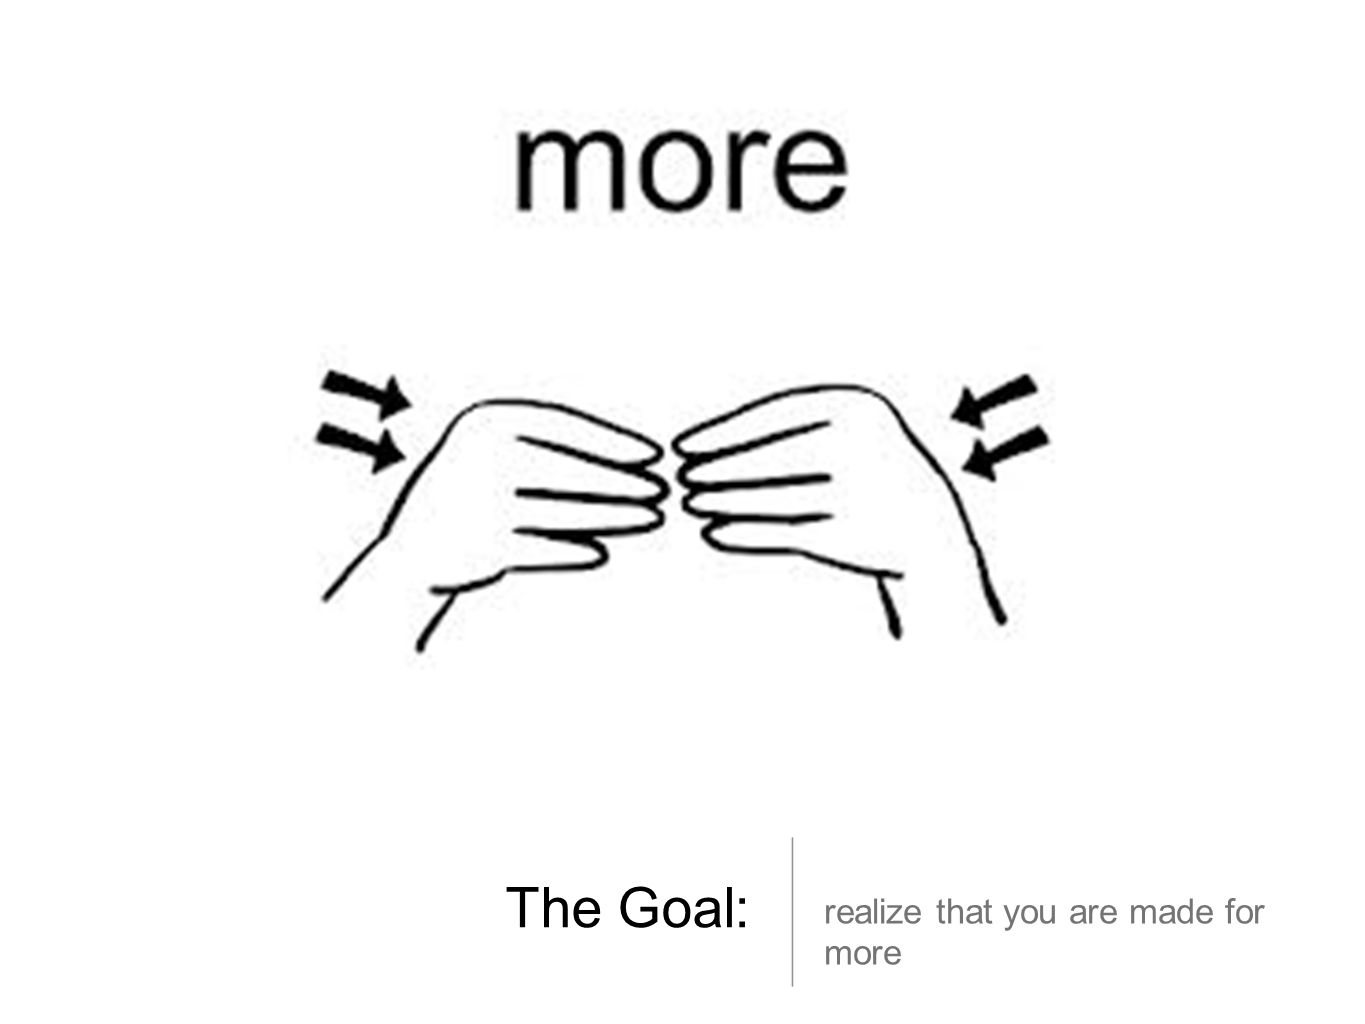 The Goal: realize that you are made for more